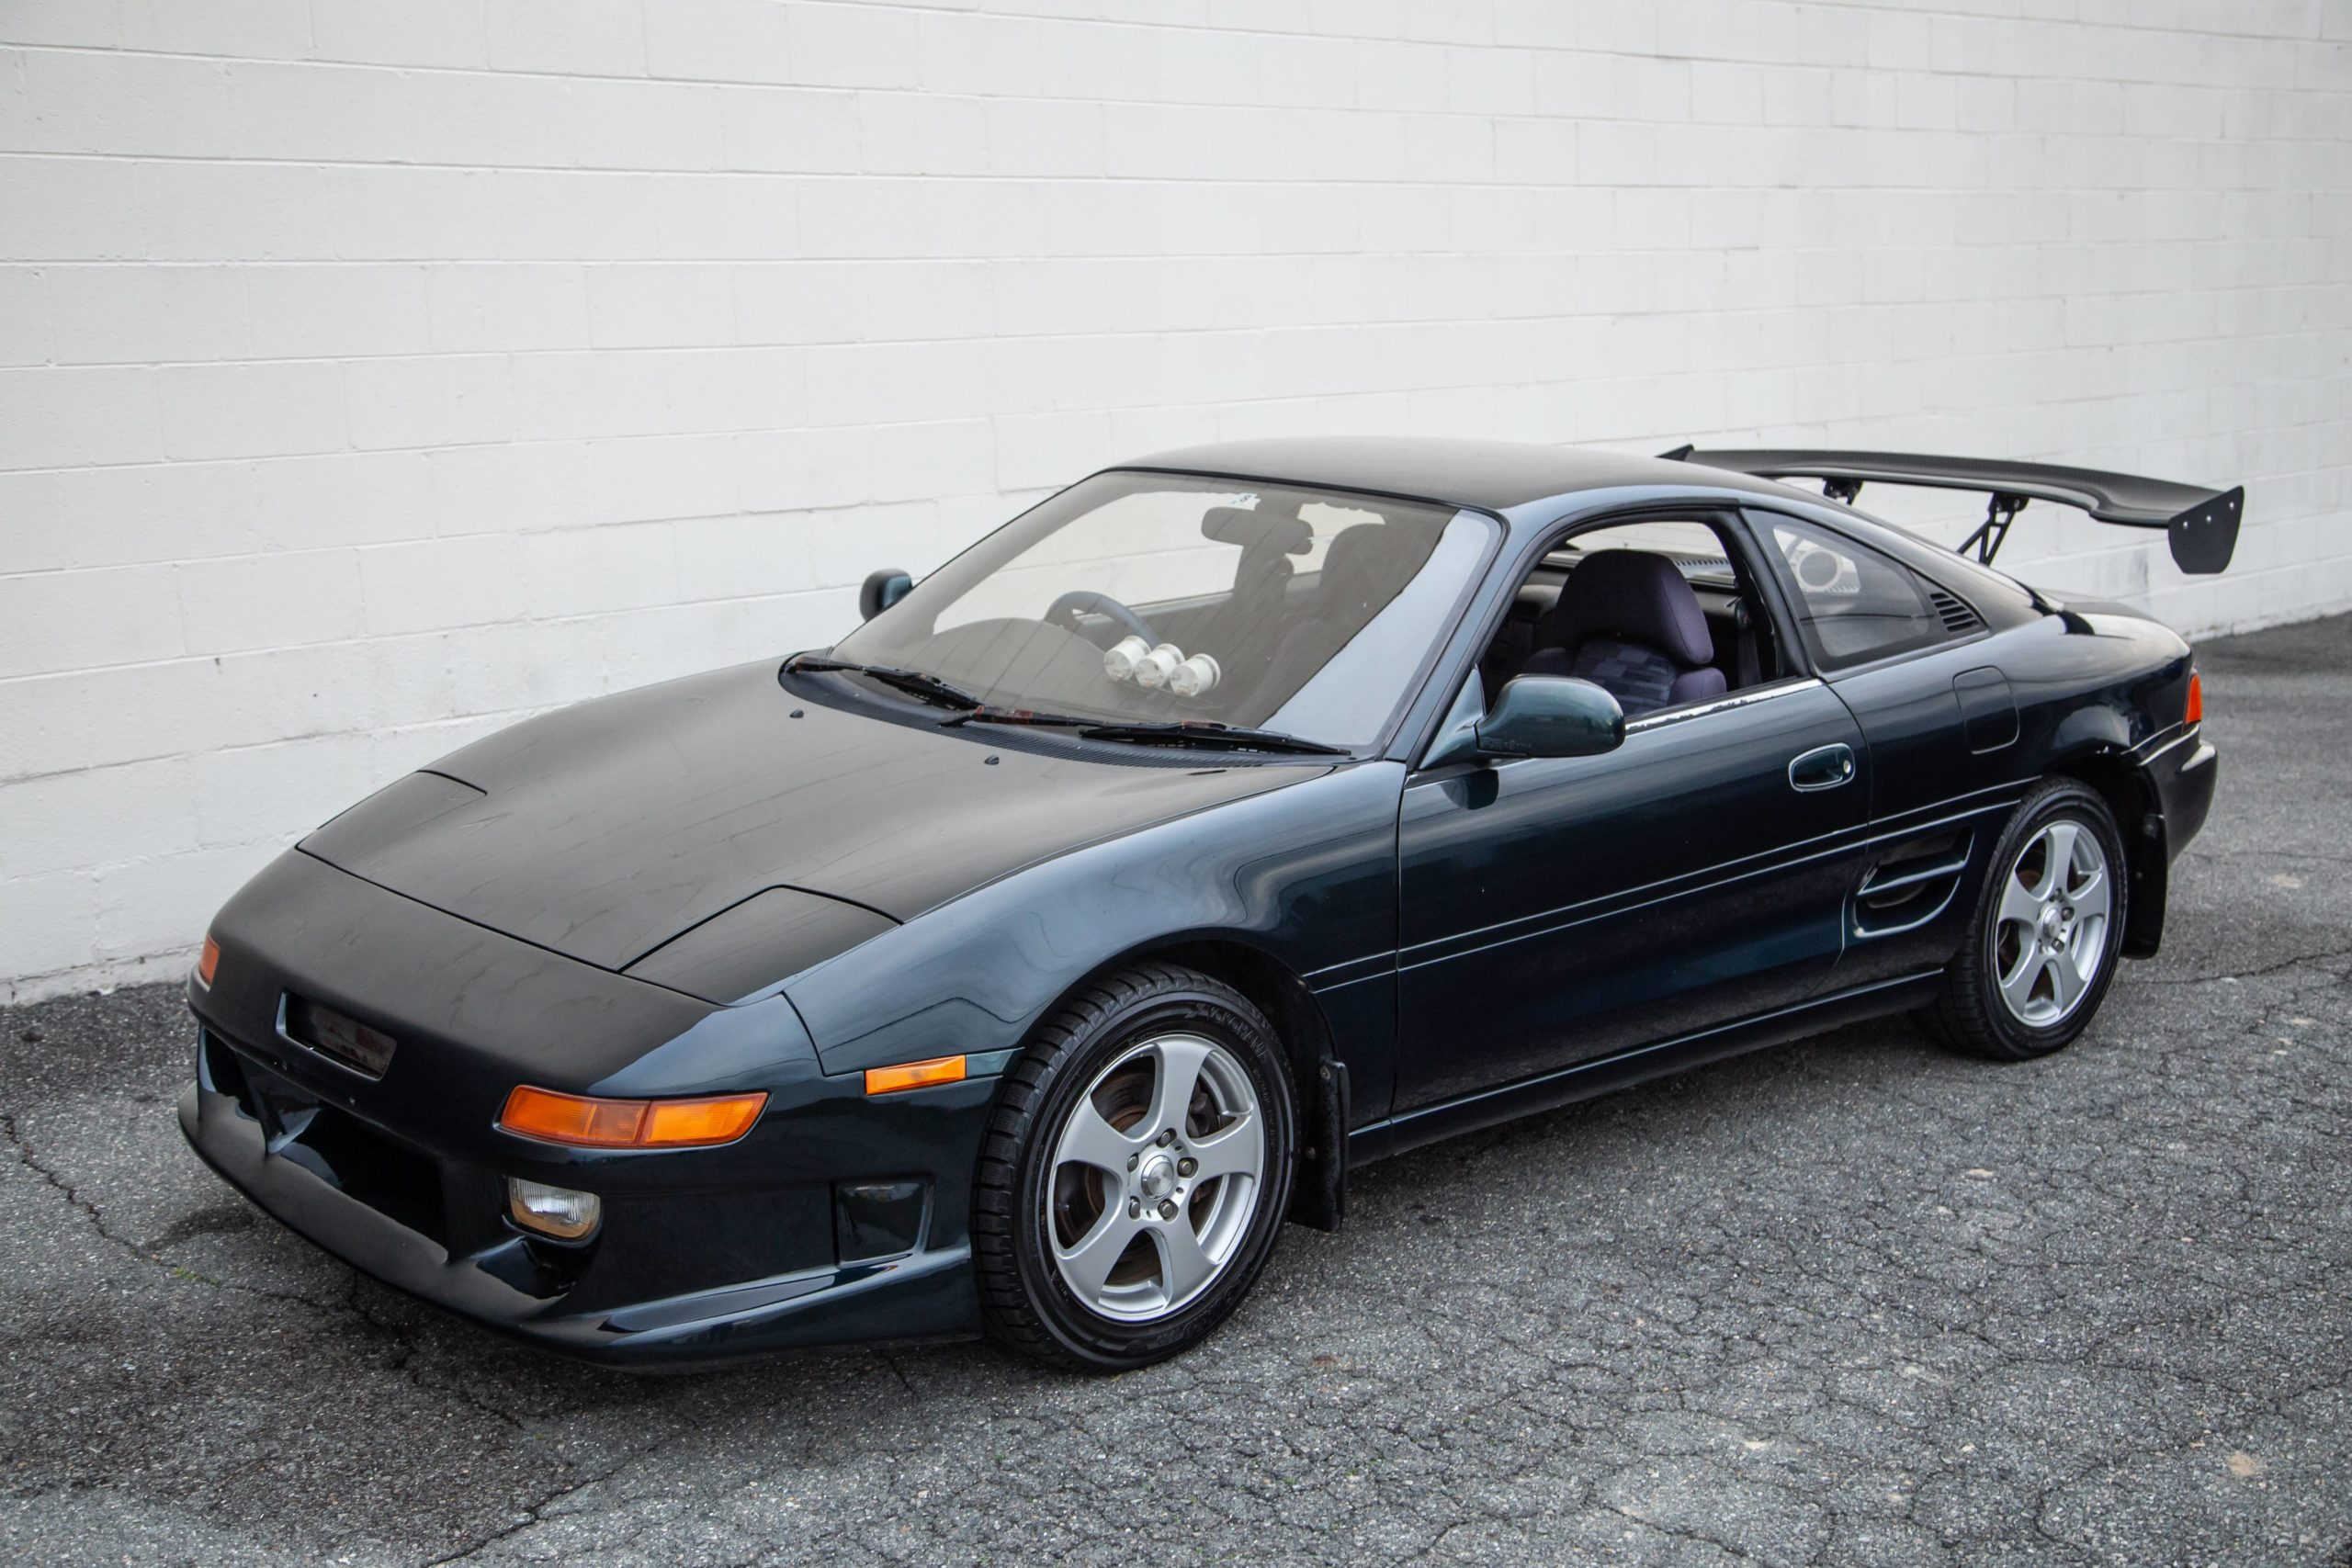 1994 Toyota MR2 GT-S Turbo Slicktop Roof Bomex Aero Clean Modified JDM Import